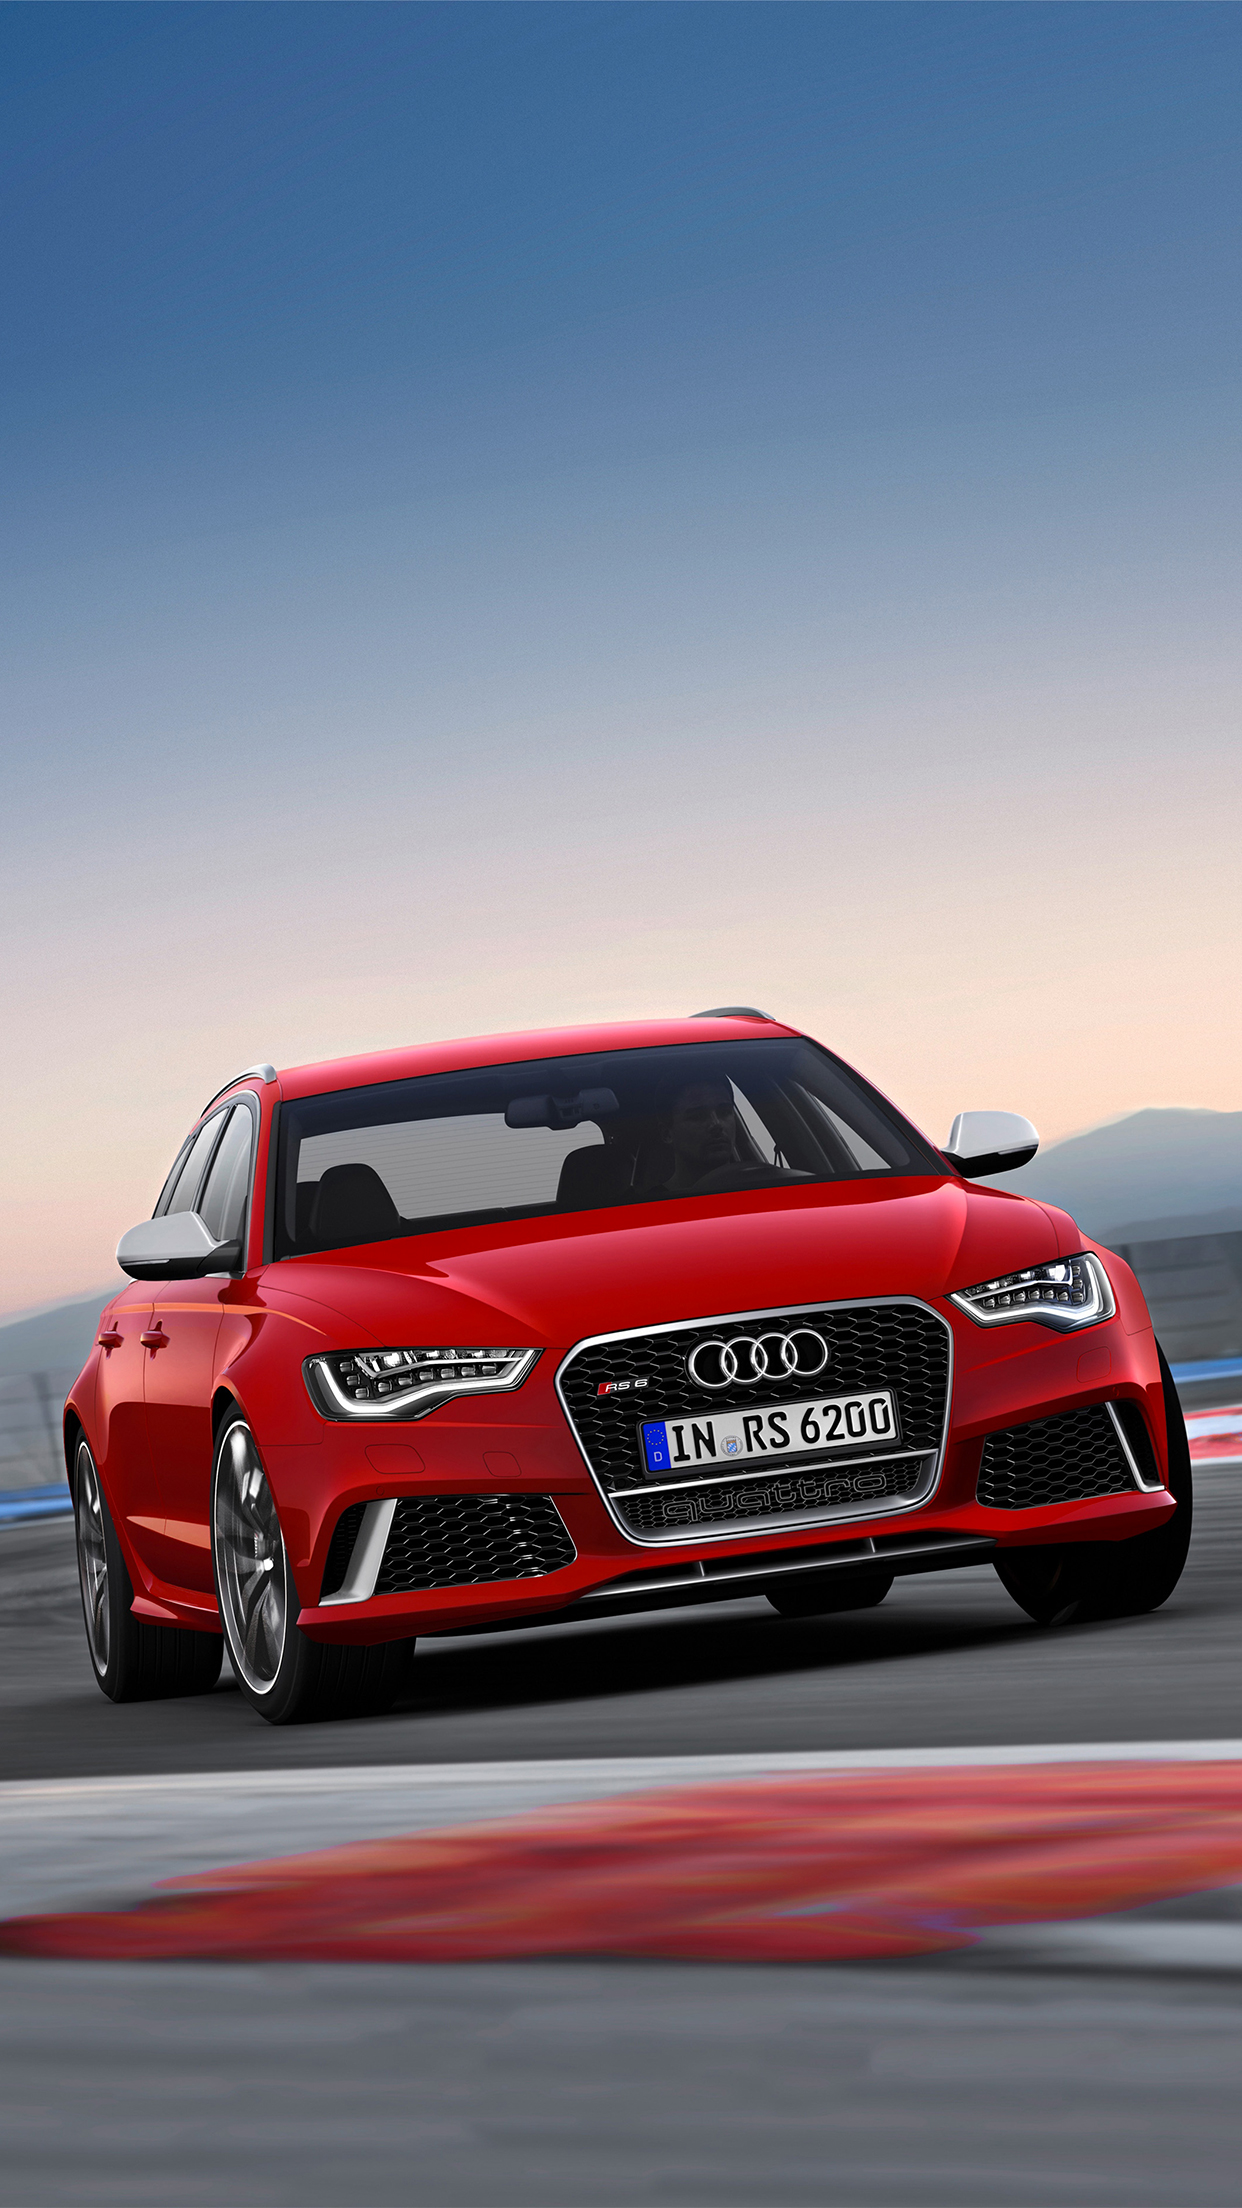 audi rs6 wallpaper for iphone x 8 7 6 free download on 3wallpapers. Black Bedroom Furniture Sets. Home Design Ideas